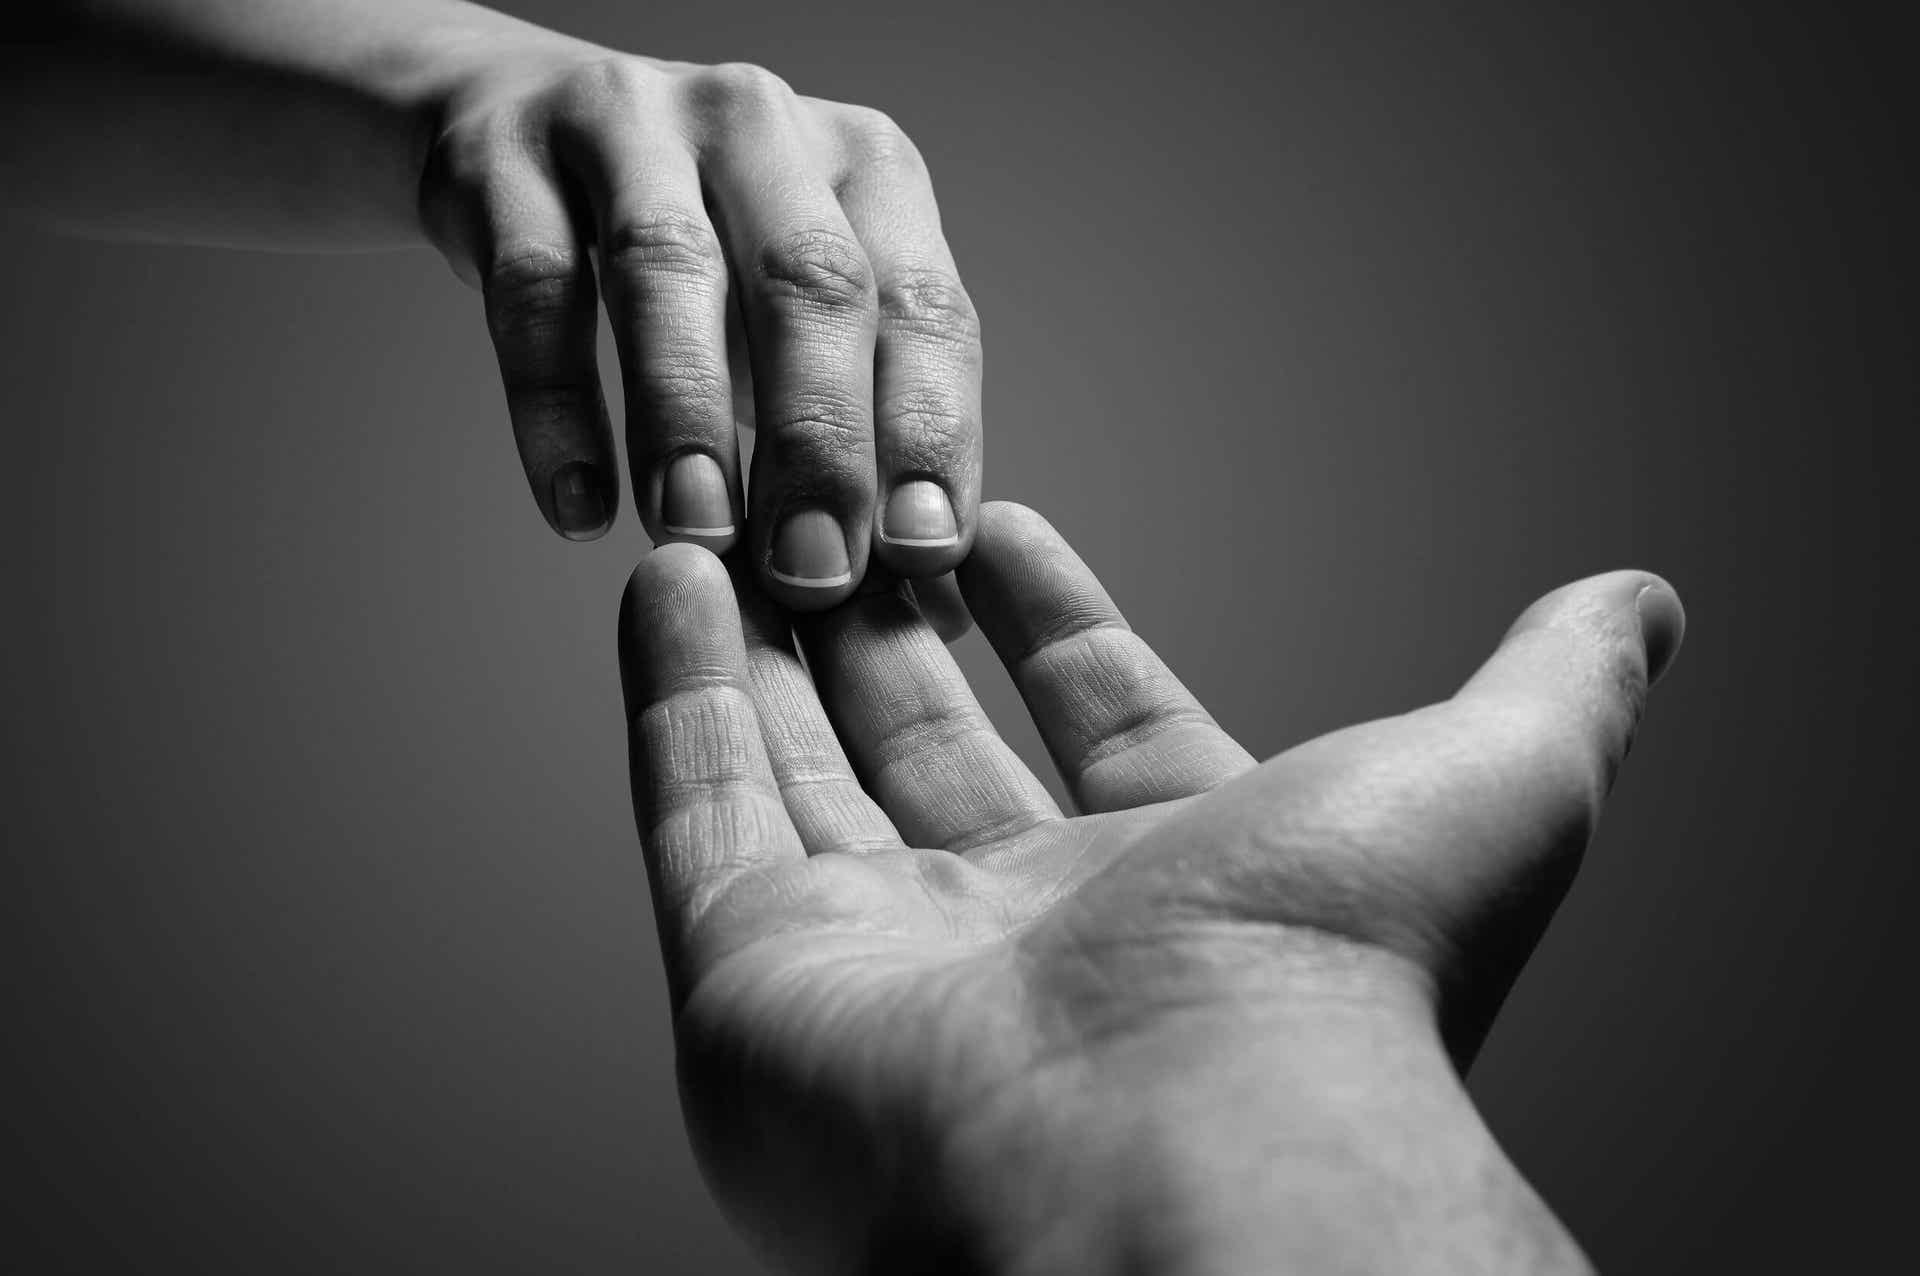 The hands of two different people touching at the fingertips.